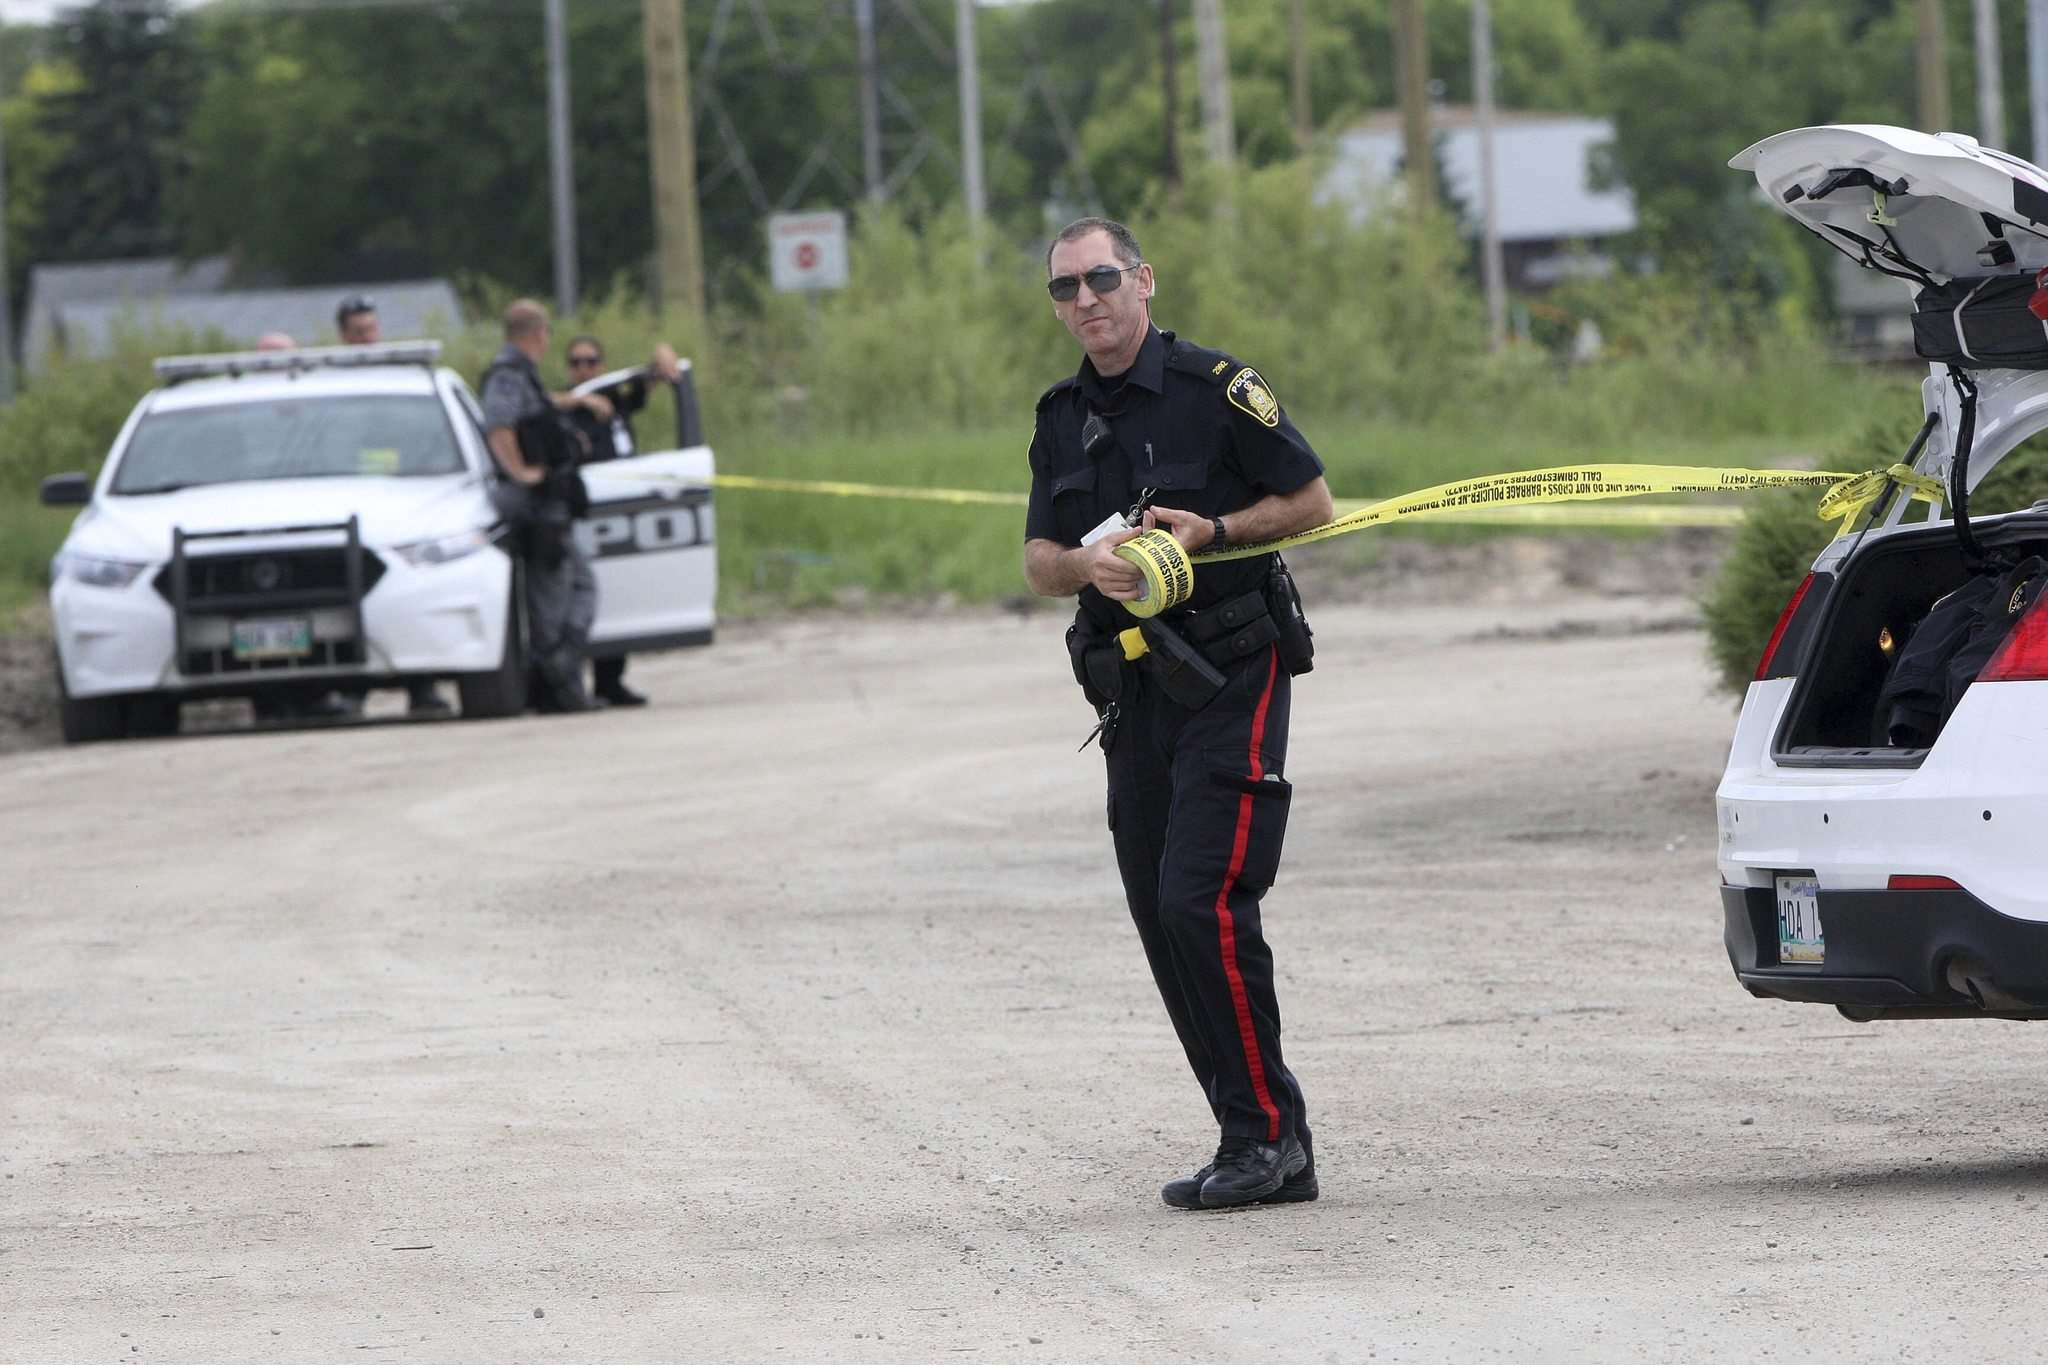 JOE BRYKSA / WINNIPEG FREE PRESS</p><p>Police secured an area Wednesday afternoon on Taylor Avenue near Sobeys.</p>